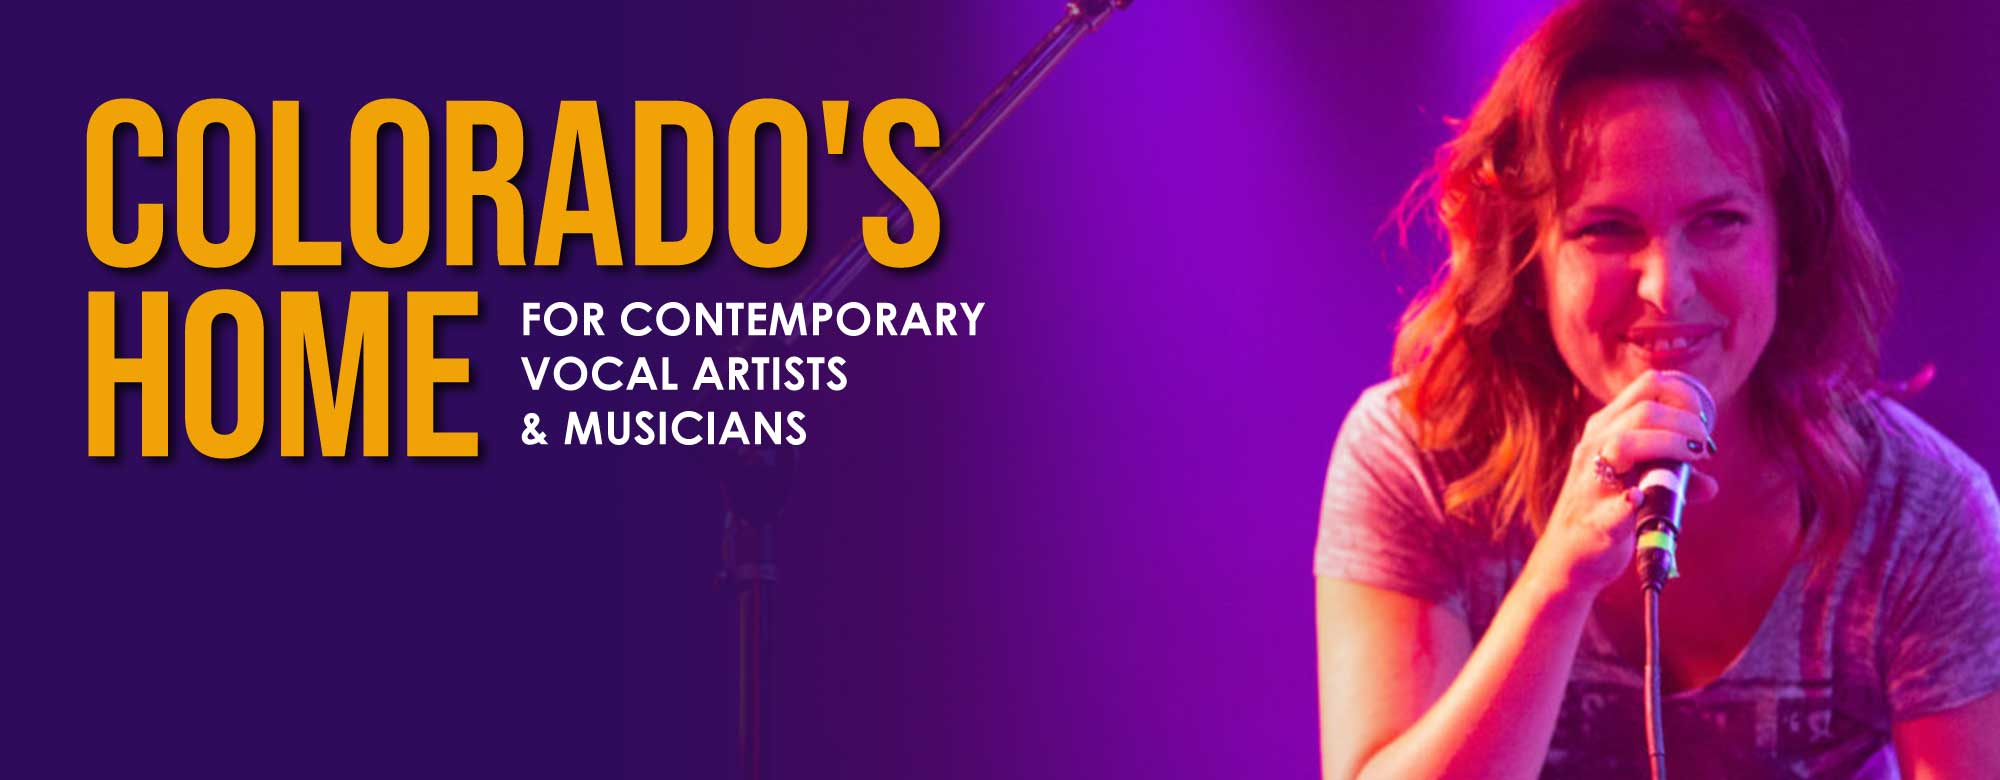 Colorado's home for contemporary vocalists and musicians